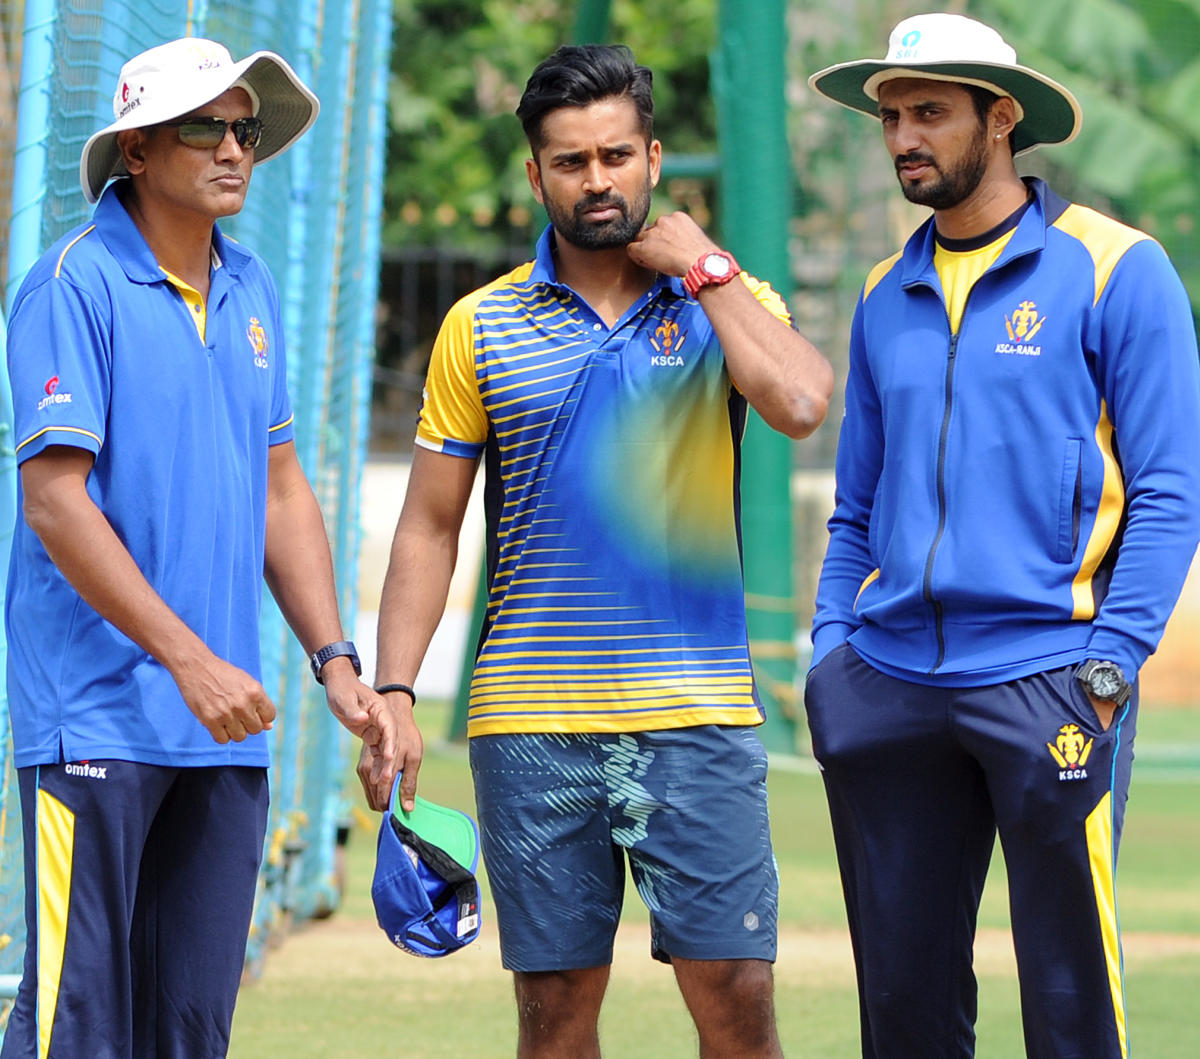 LOTS OF THINKING TO DO: Karnataka captain R Vinay Kumar (centre) and coach and assistant coach duo of Yere Goud (left) and S Arvind know their task this season is going to be a difficult one. DH Photo/ Srikanta Sharma R